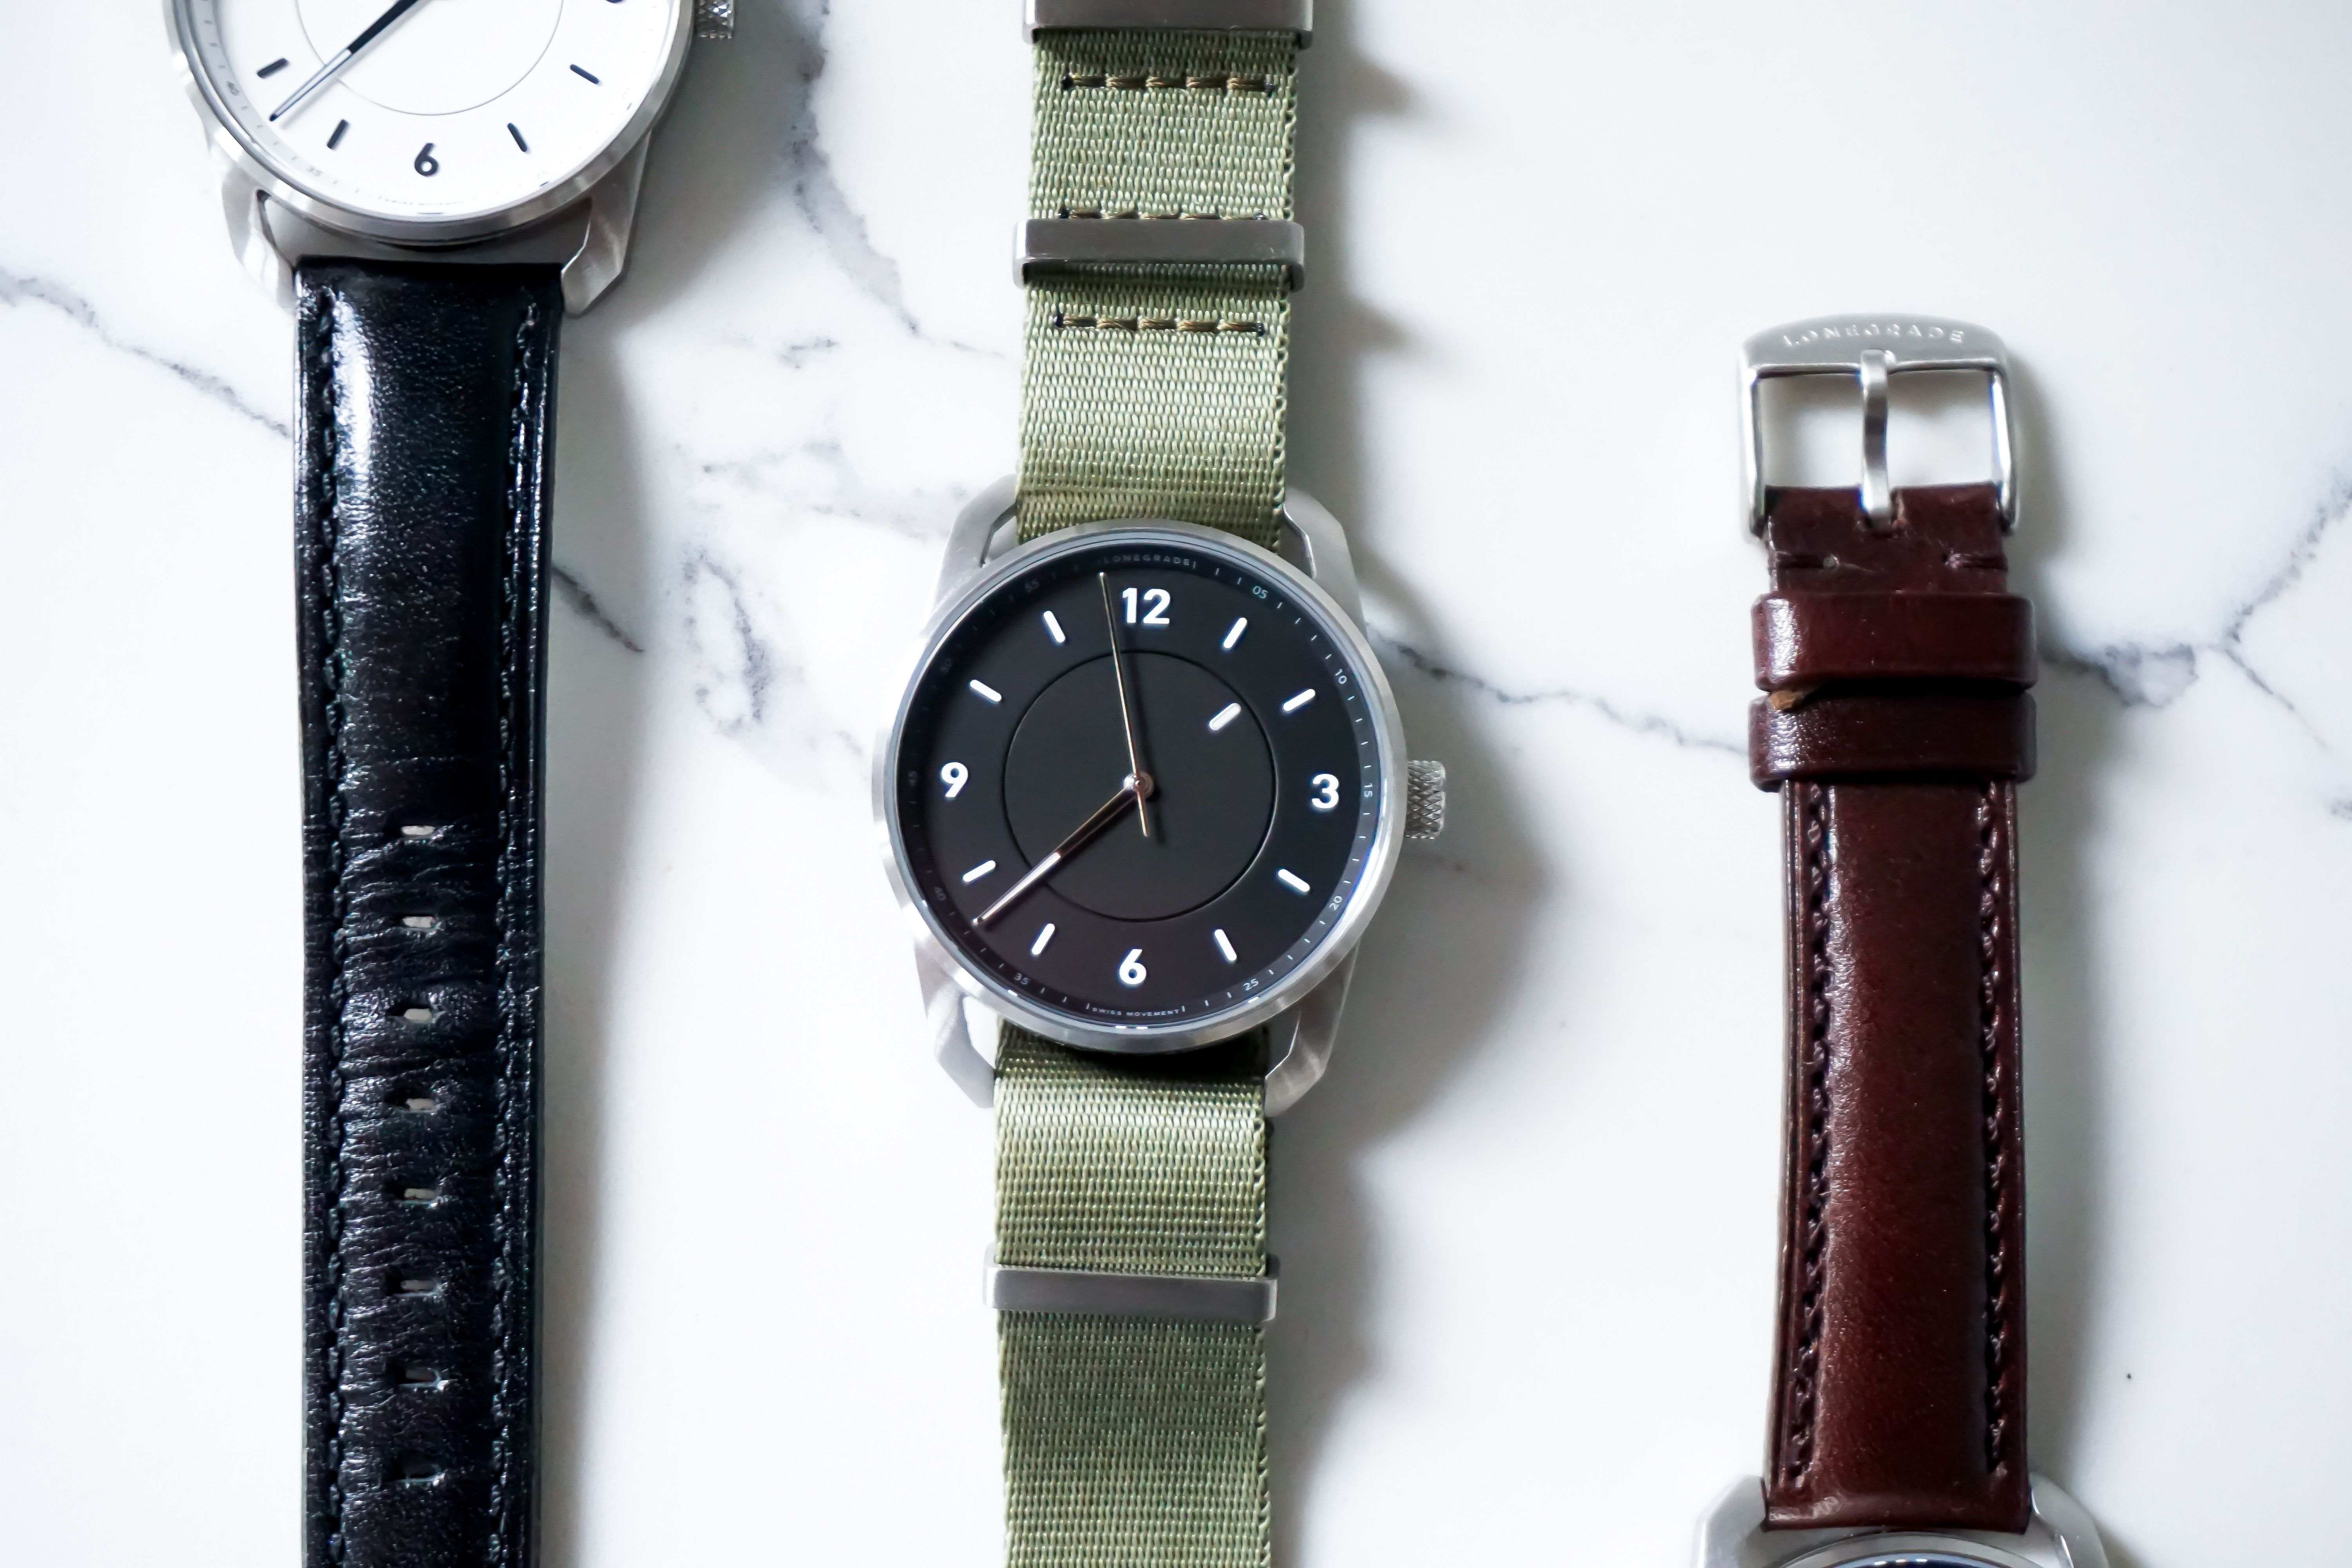 Pin on HDR140: An American Made Watch